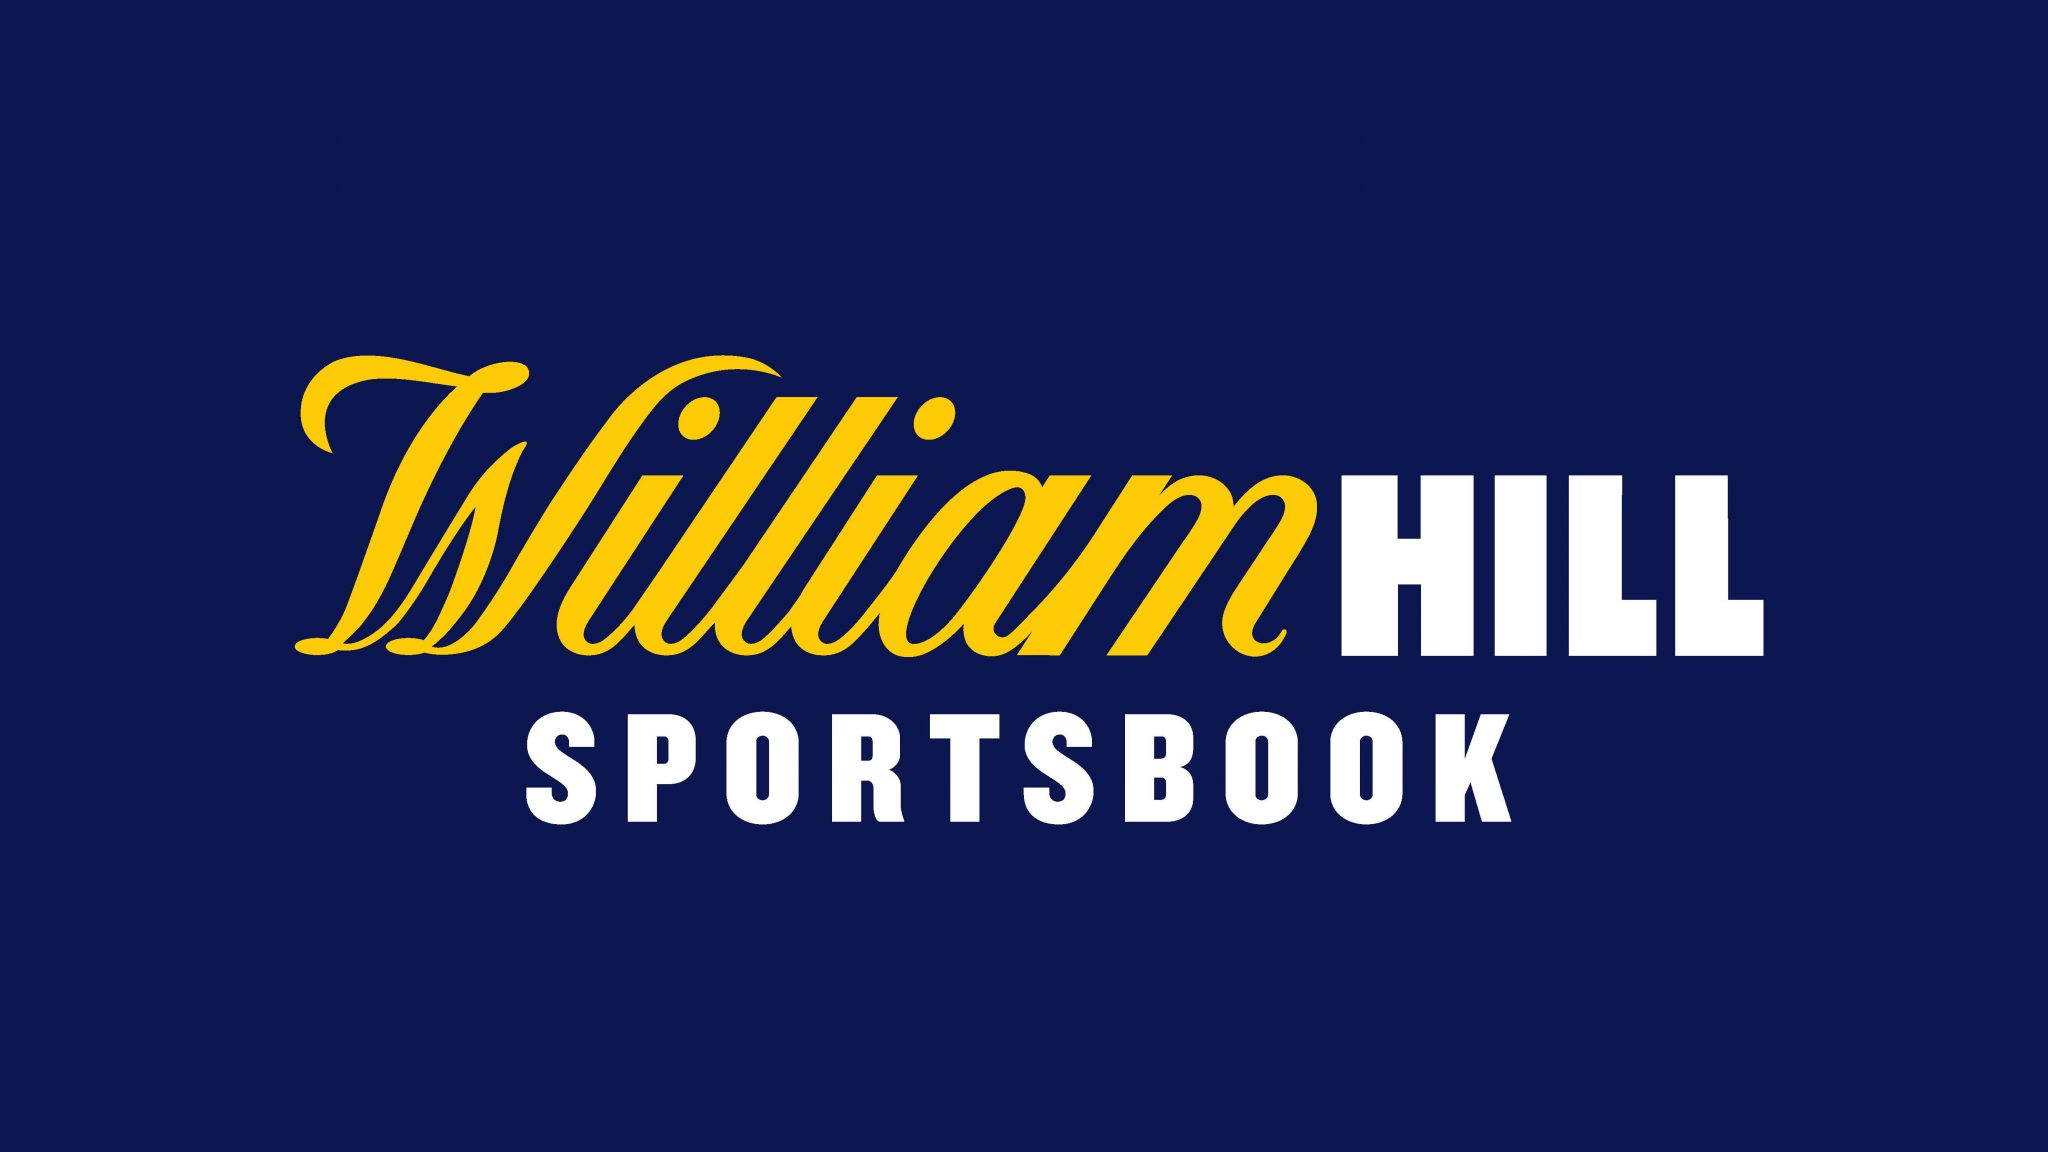 William hill sports betting promotional code guiminer flags cpu mining bitcoins